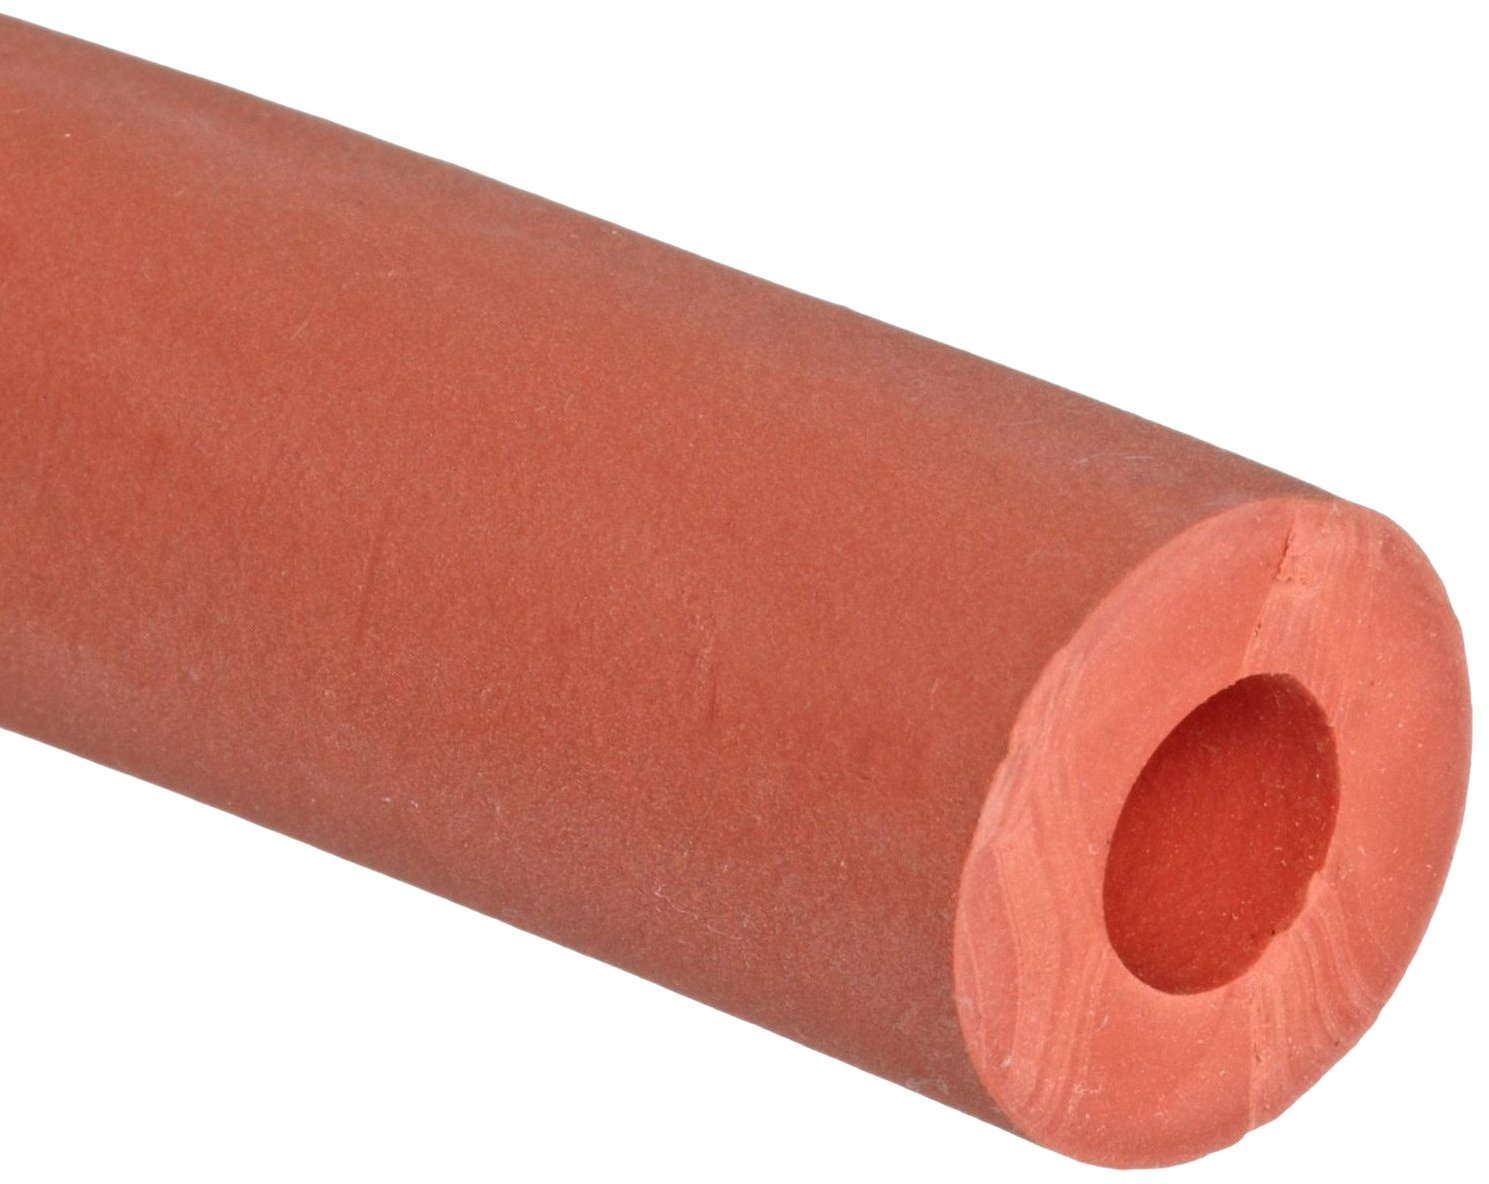 Thomas 1889 Gum Rubber Red Extruded Vacuum Tubing, 1-1/2'' OD x 3/4'' ID x 3/8'' Wall Thick, 10' Length